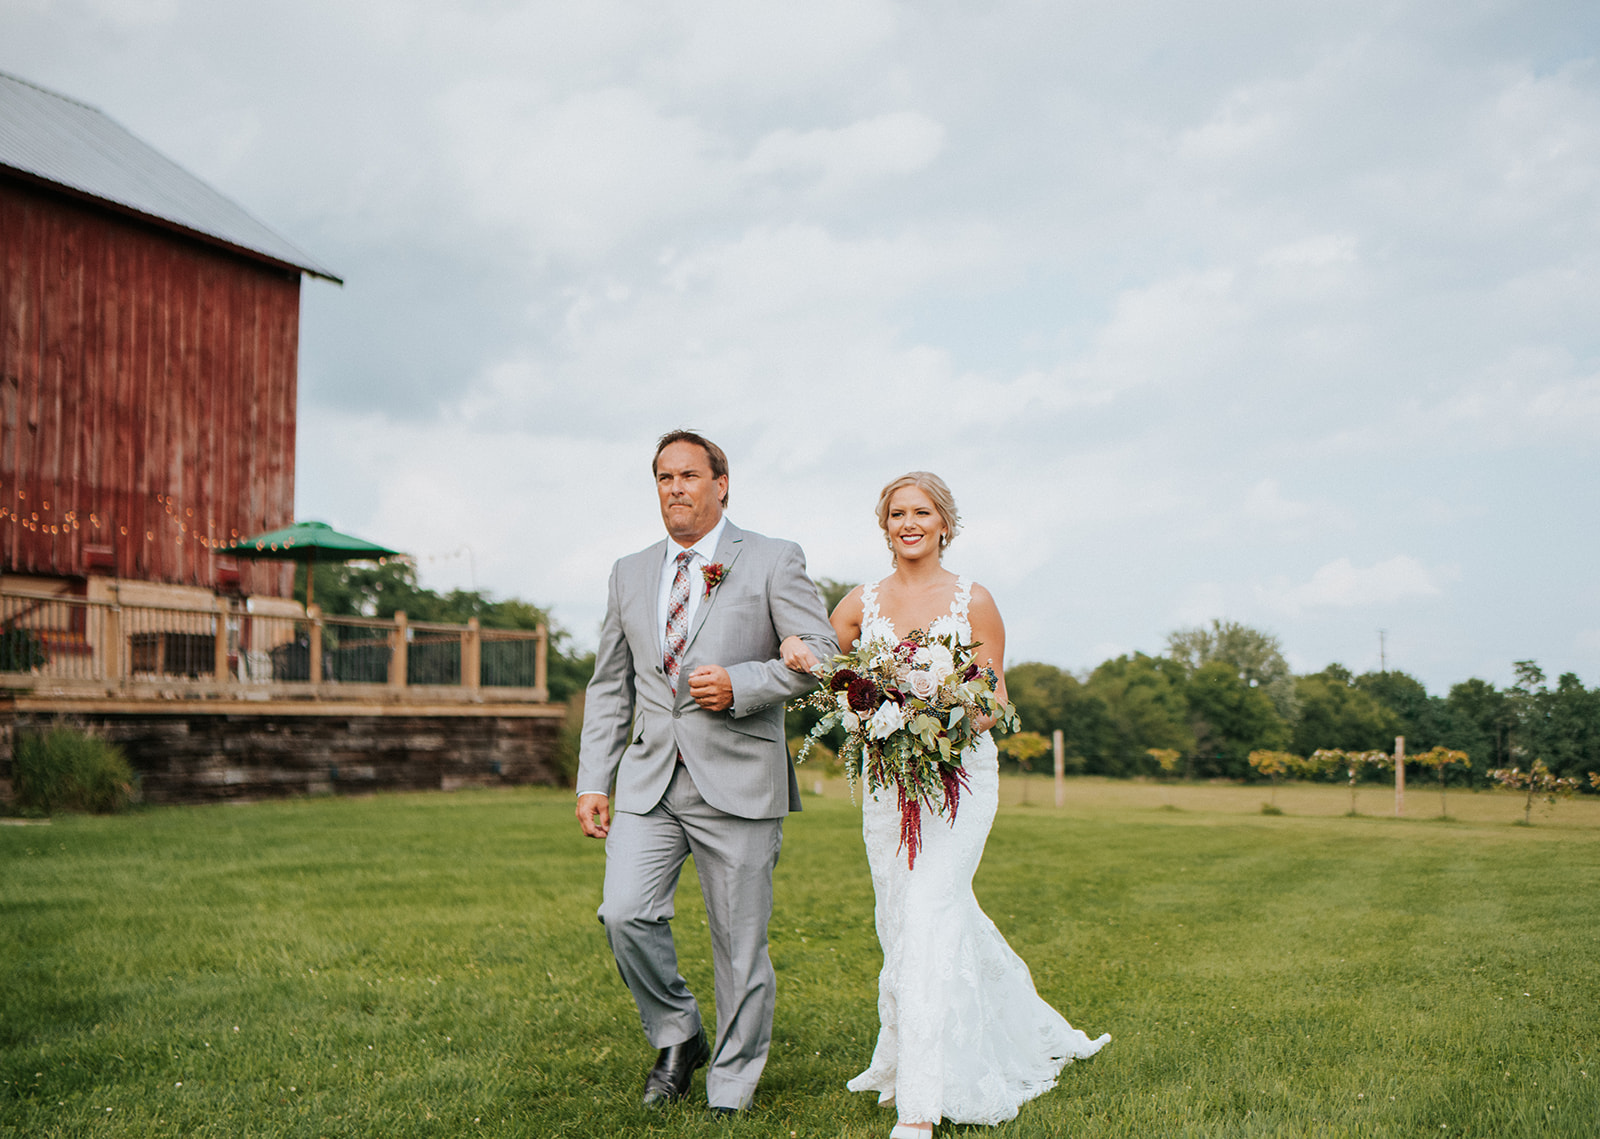 overthevineswisconsinwedding_0608.jpg